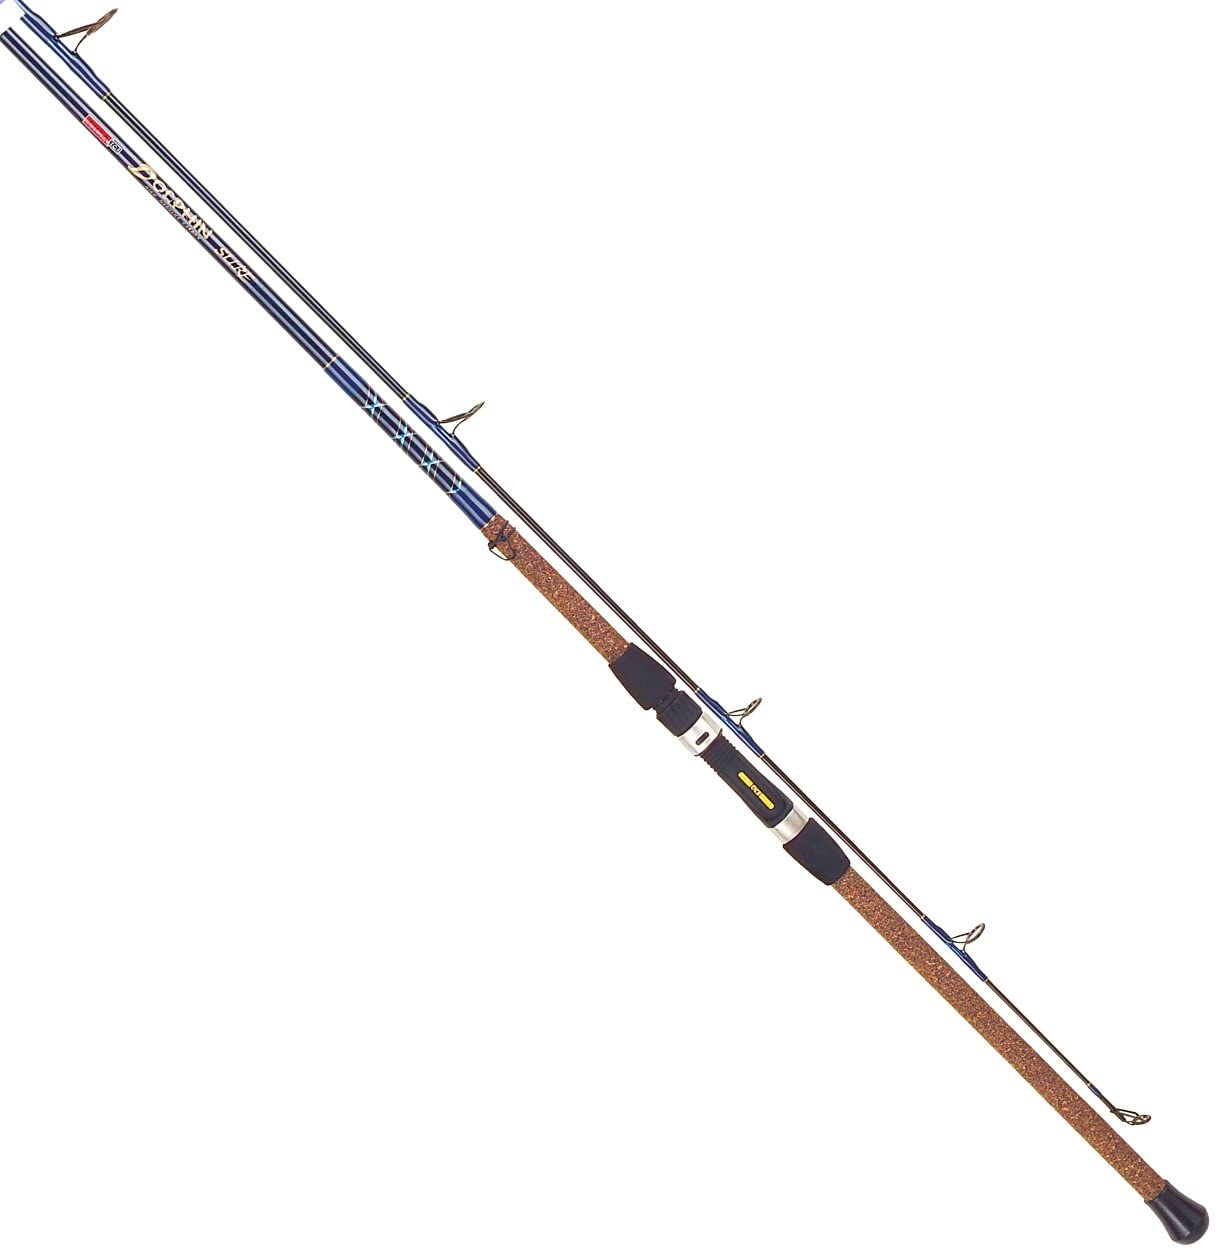 best surf rod: Tica UGSA Series Surf Spinning Fishing Rod